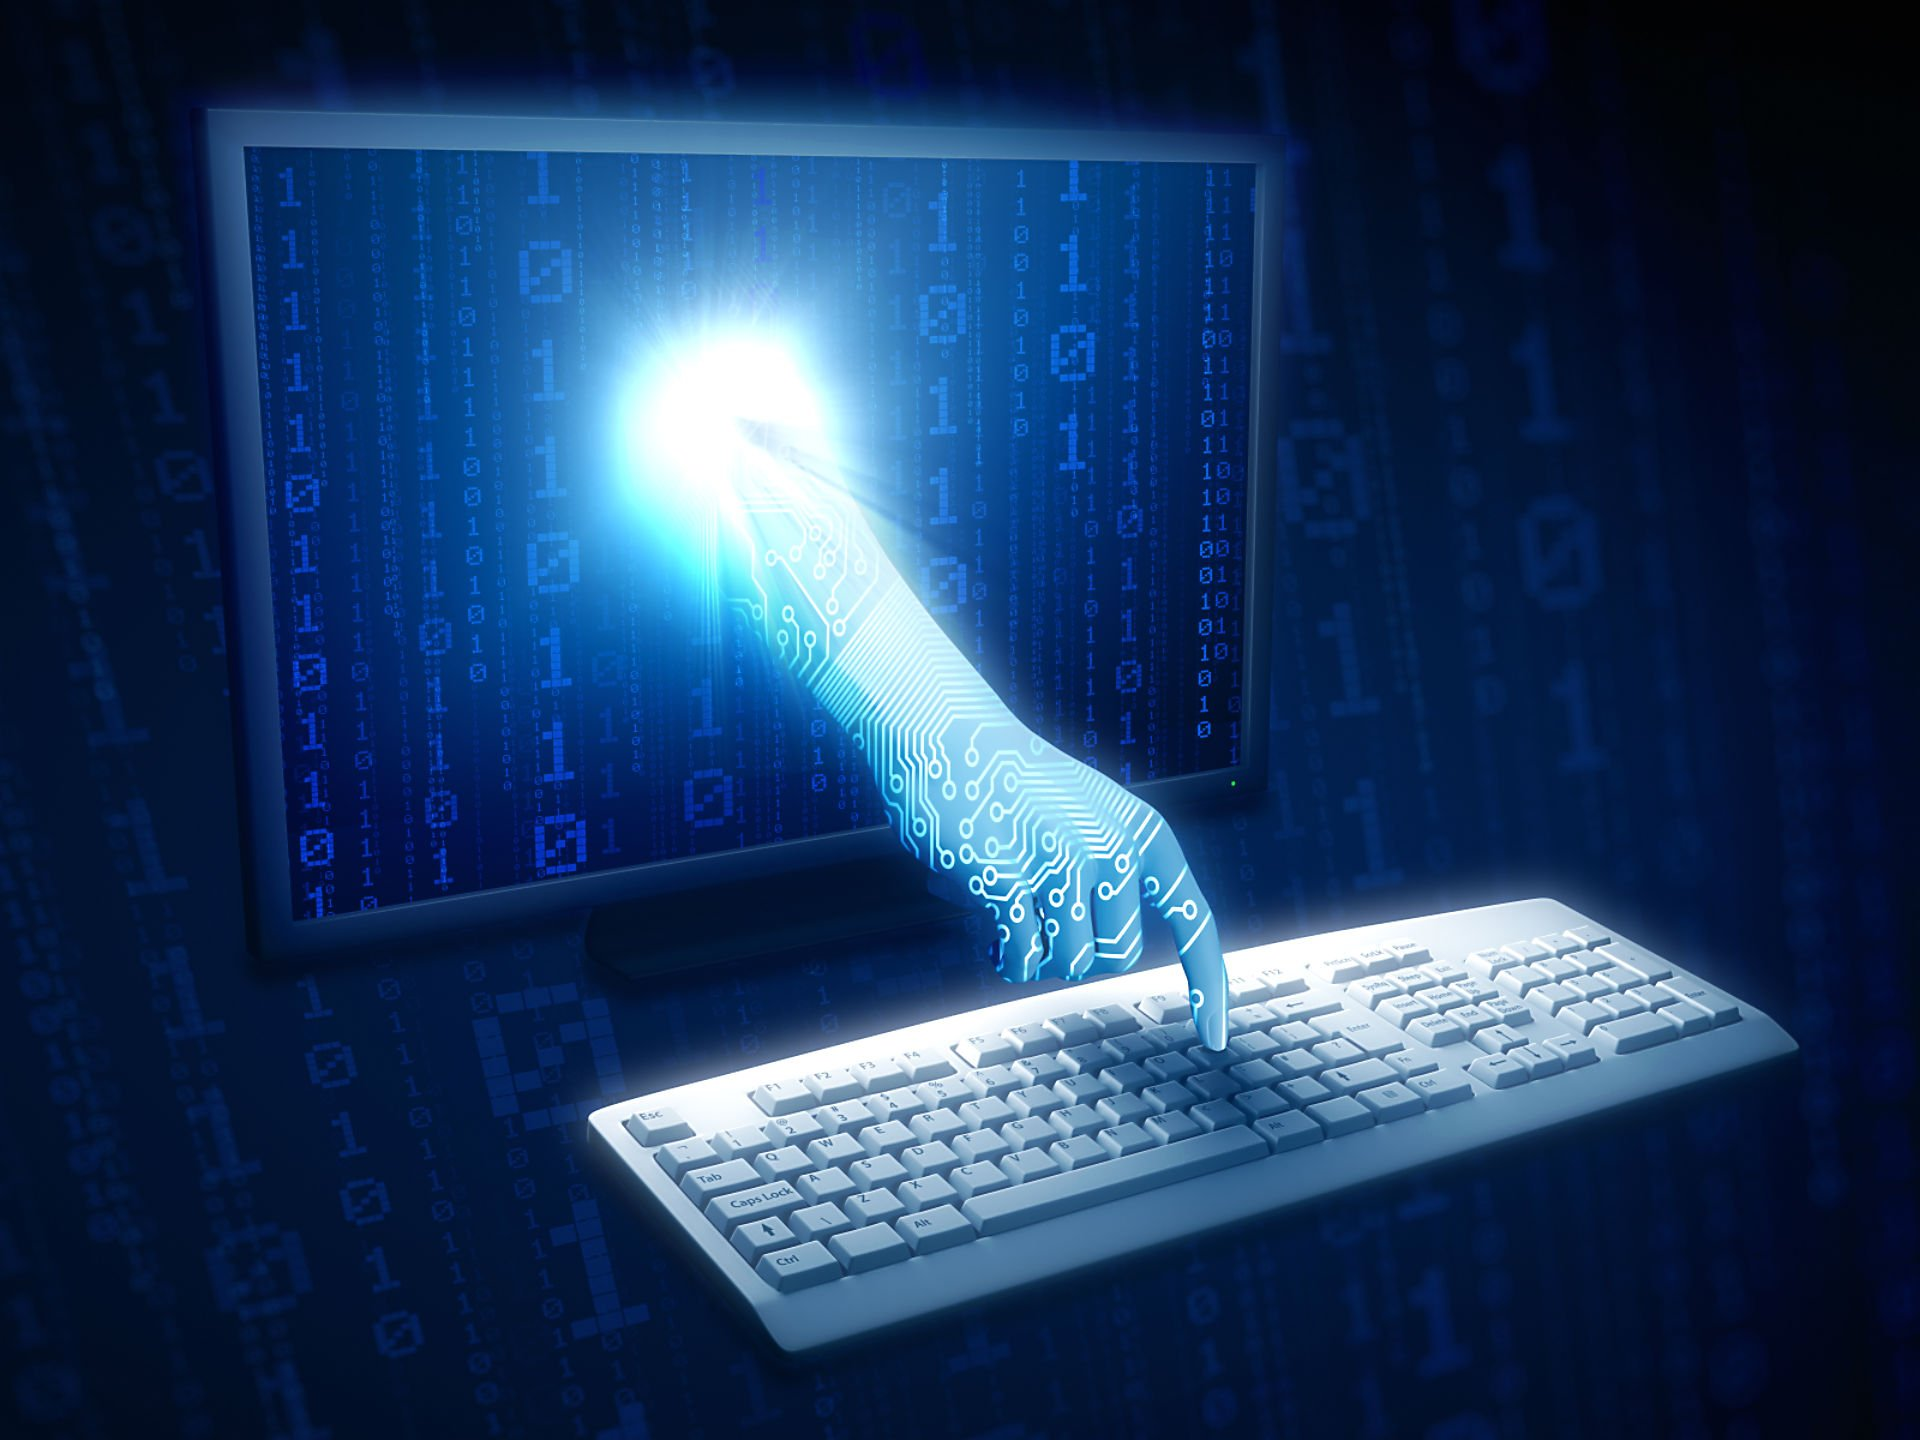 download computer science hd wallpapers gallery